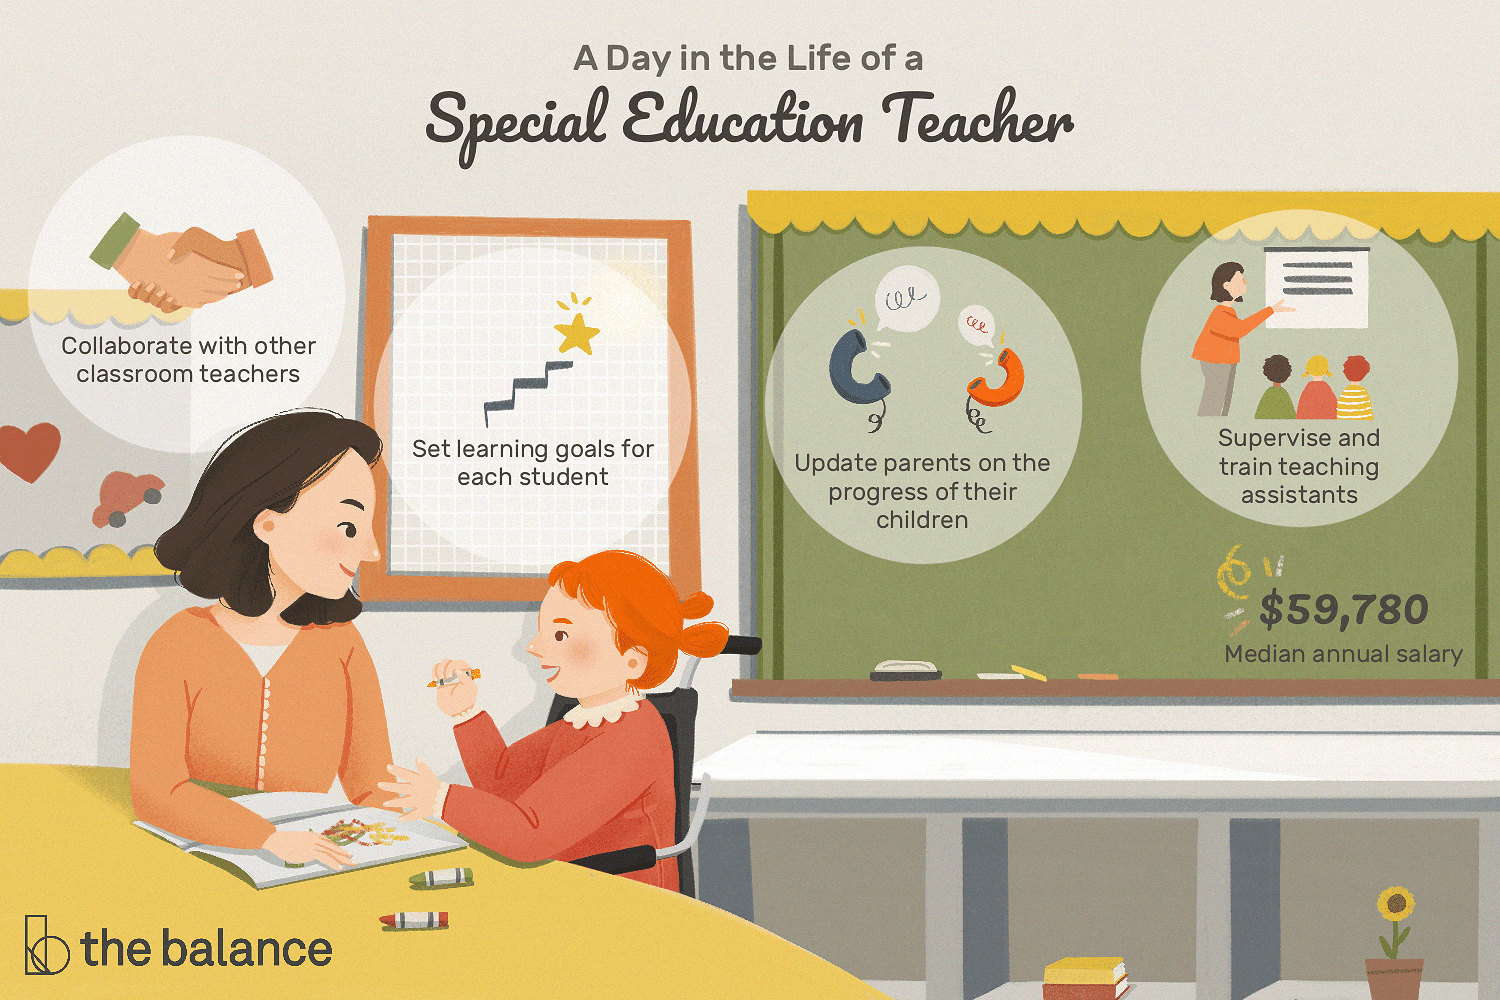 Special Education Teacher Job Description: Salary, Skills, & More